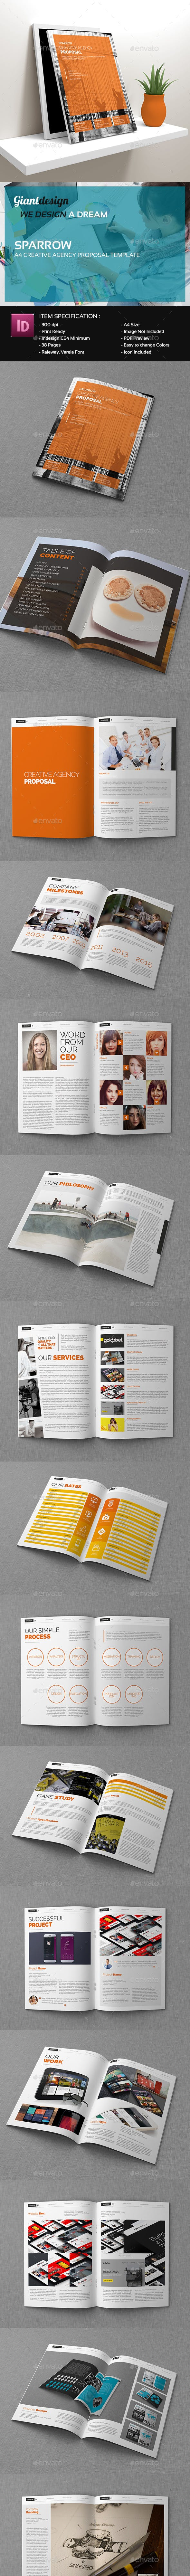 Sparrow Creative Agency Proposal Template By Giantdesign